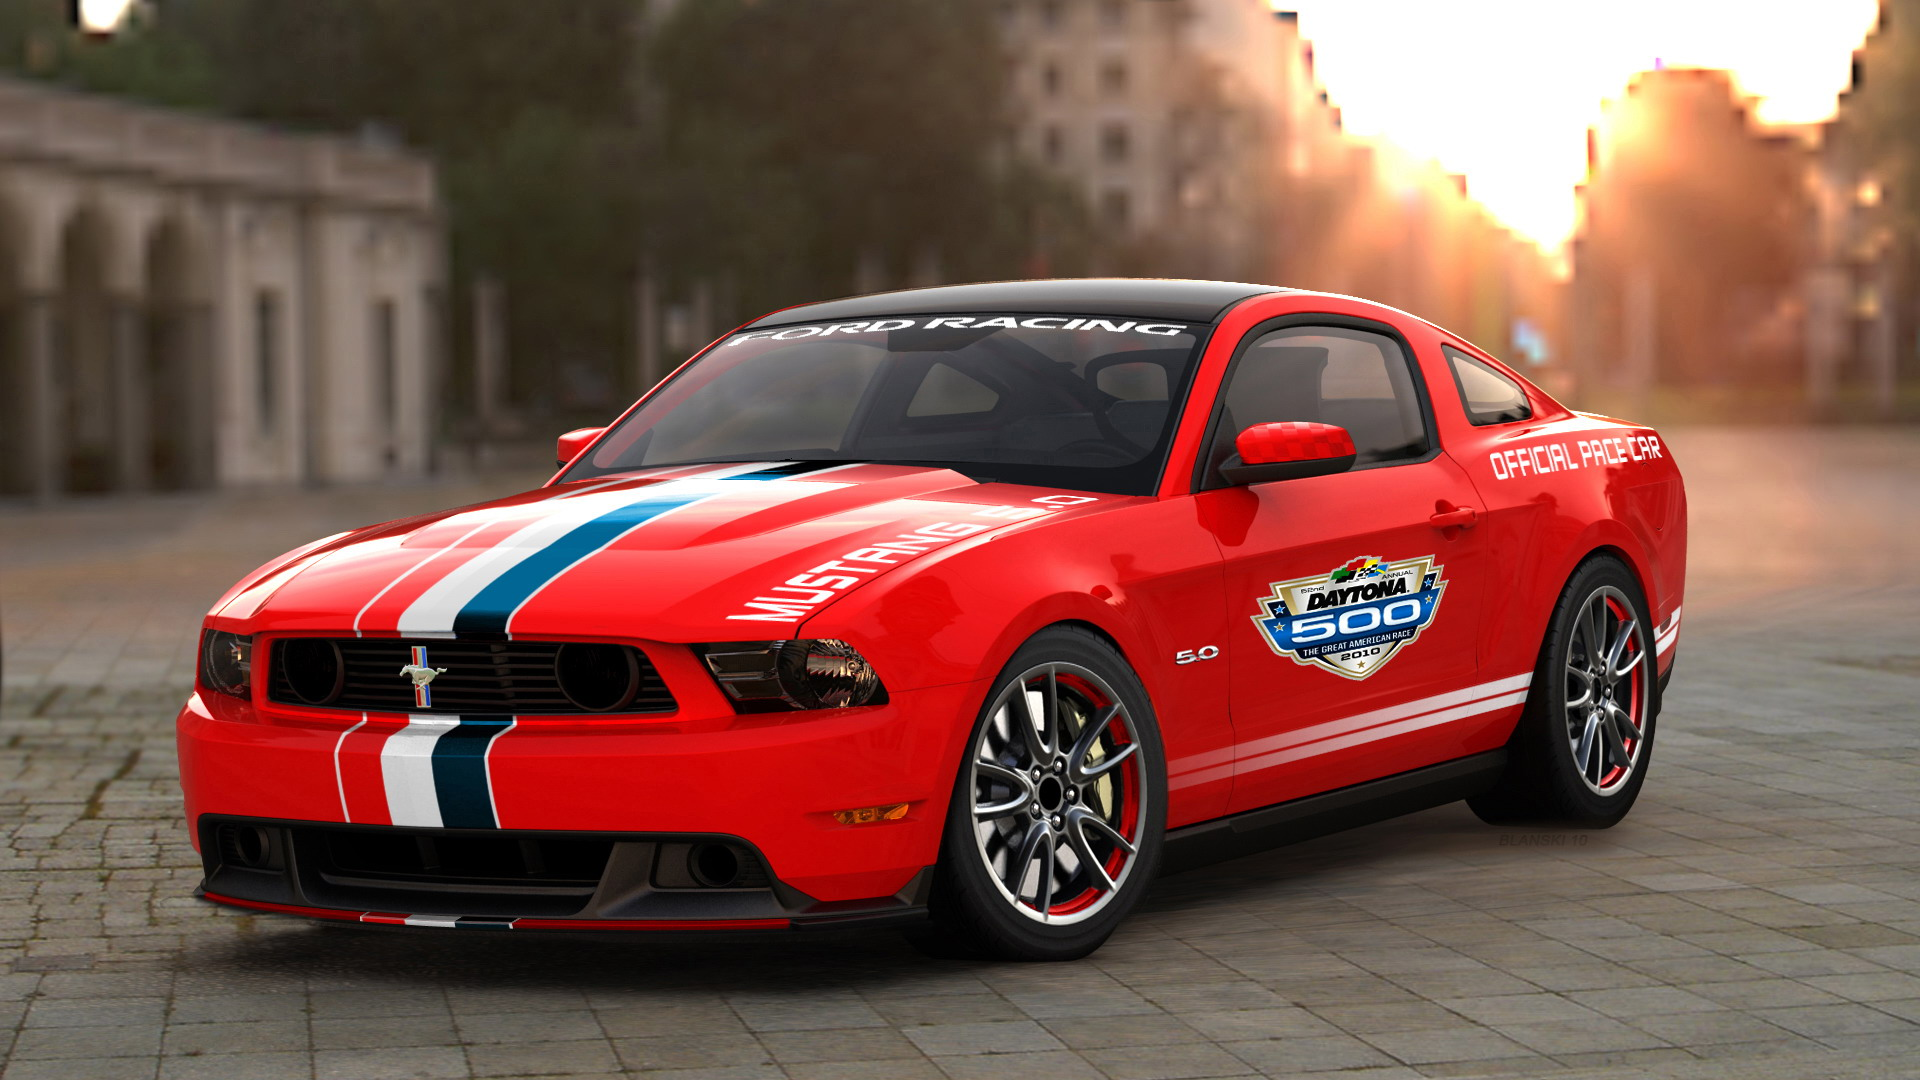 2011 ford mustang gt daytona 500 pace car review top speed. Black Bedroom Furniture Sets. Home Design Ideas